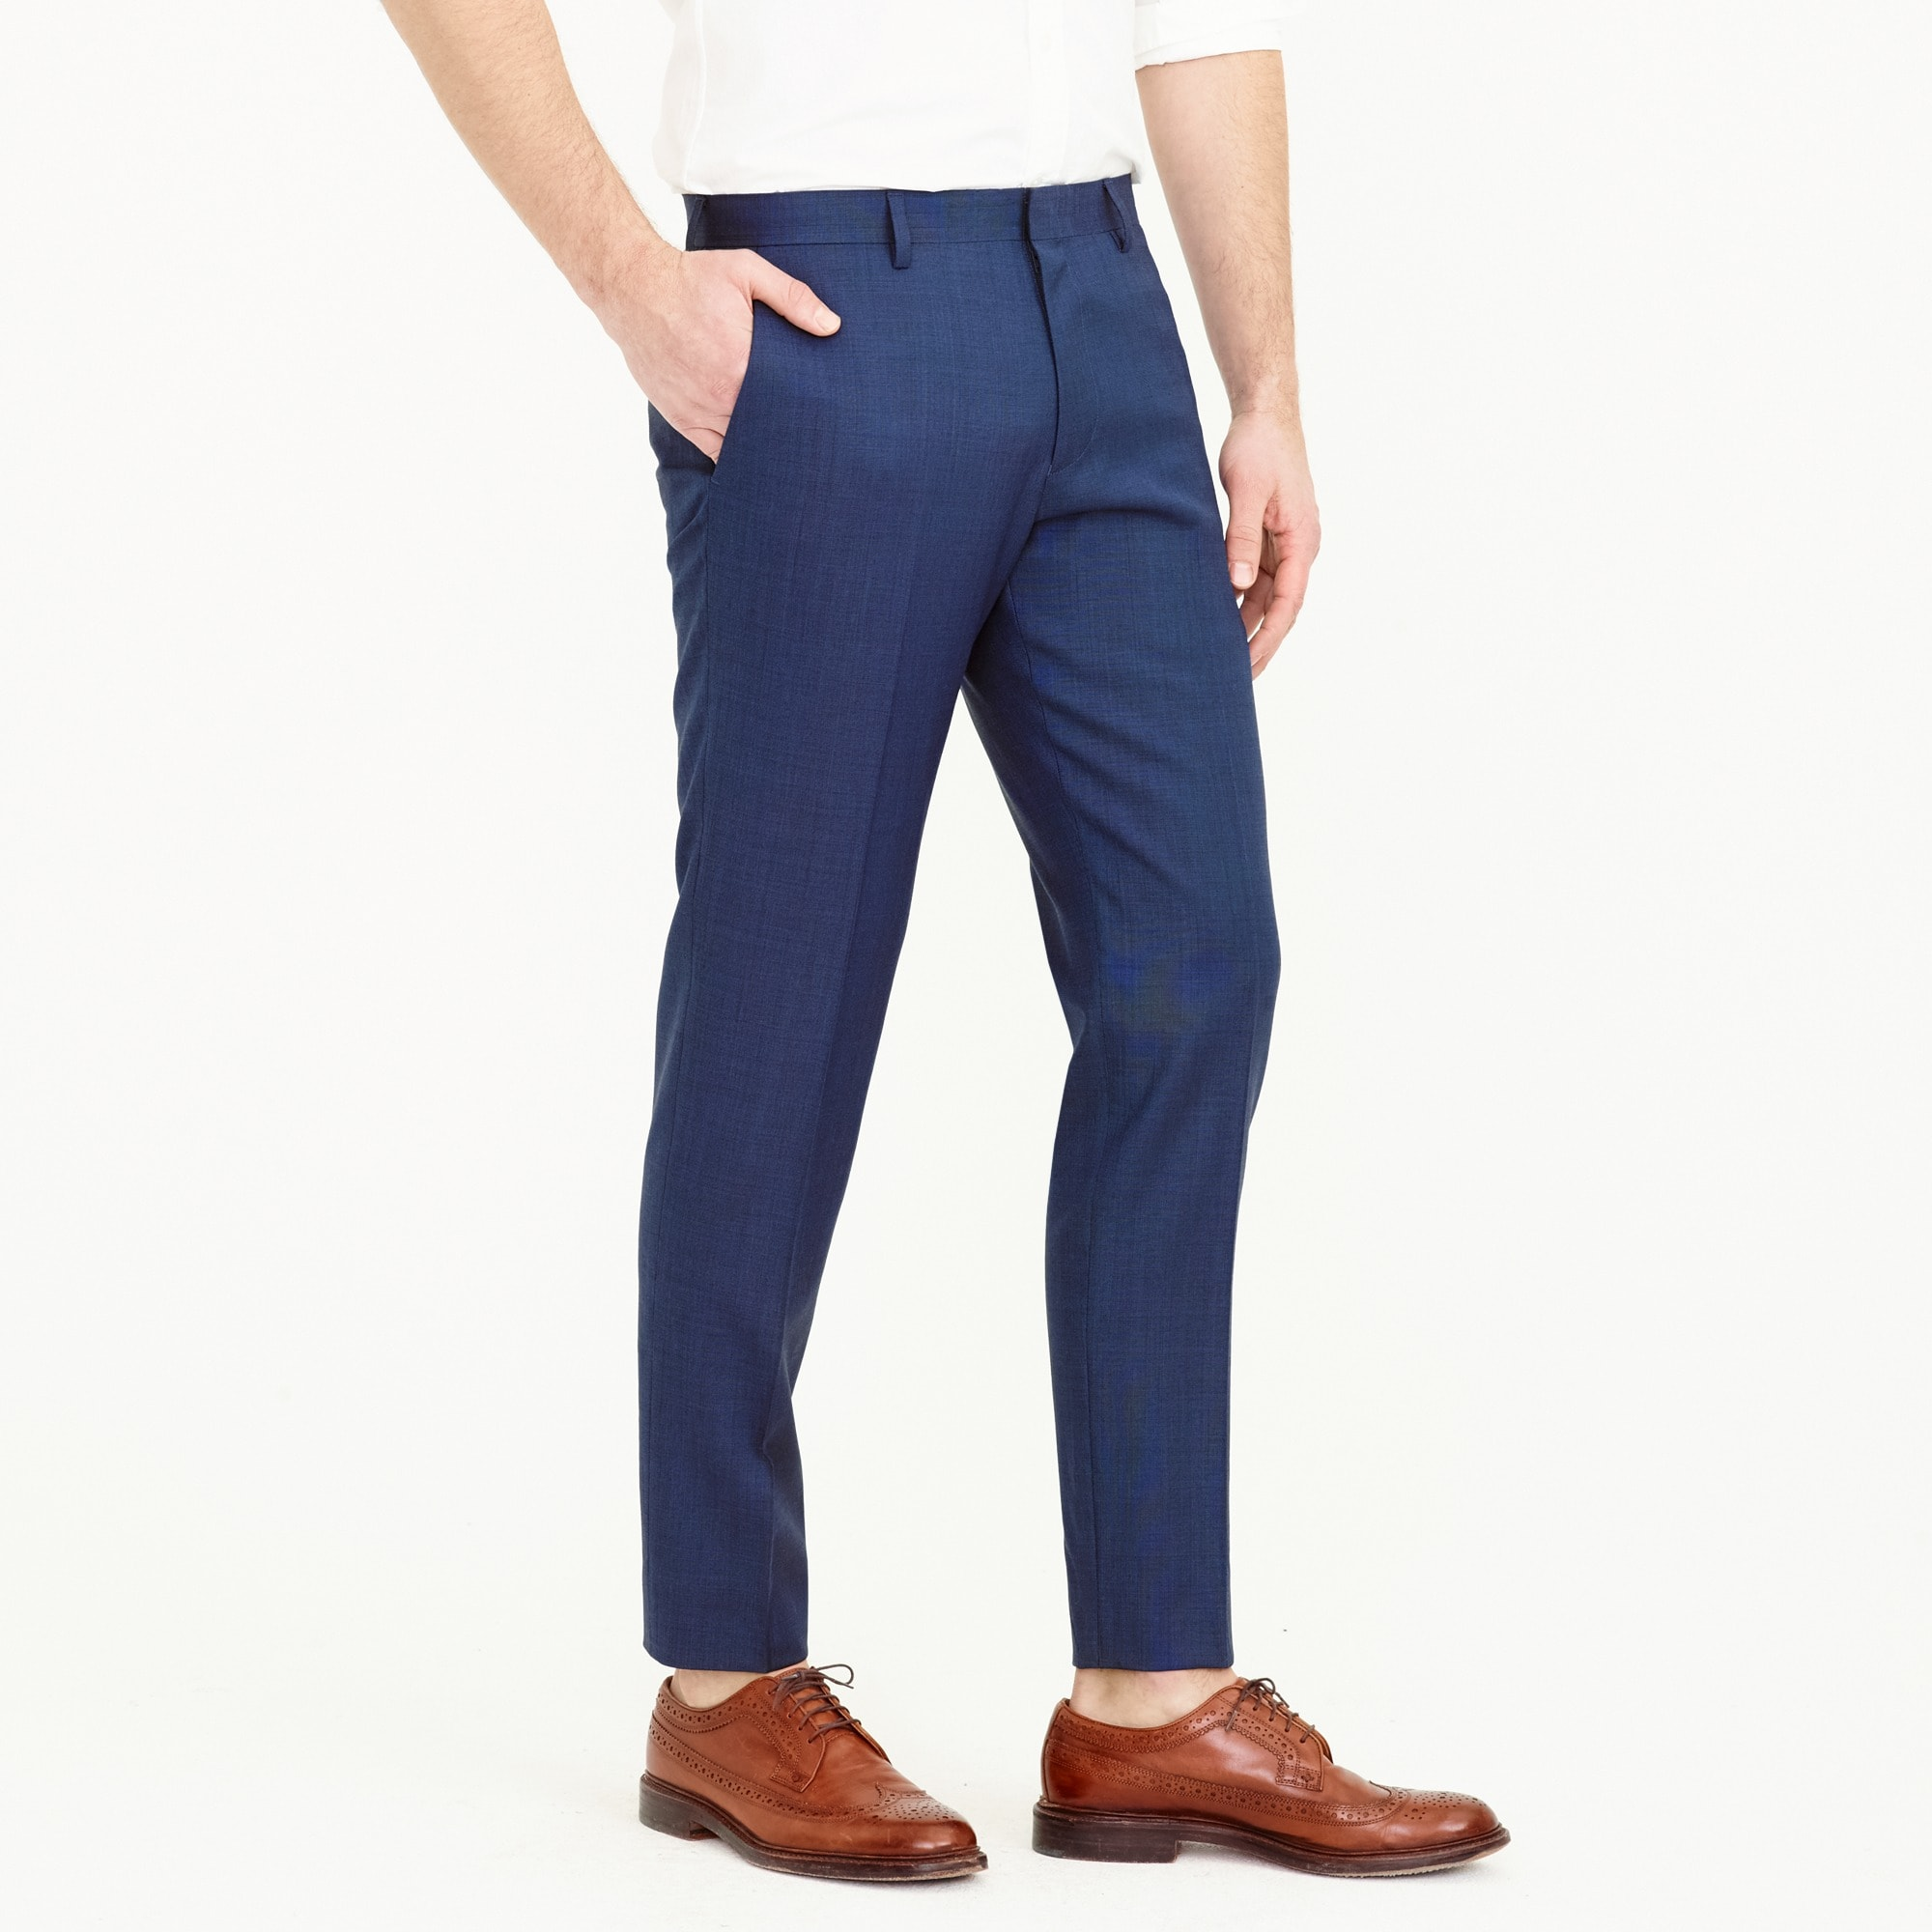 Image 3 for Ludlow Slim-fit suit pant in Italian stretch worsted wool